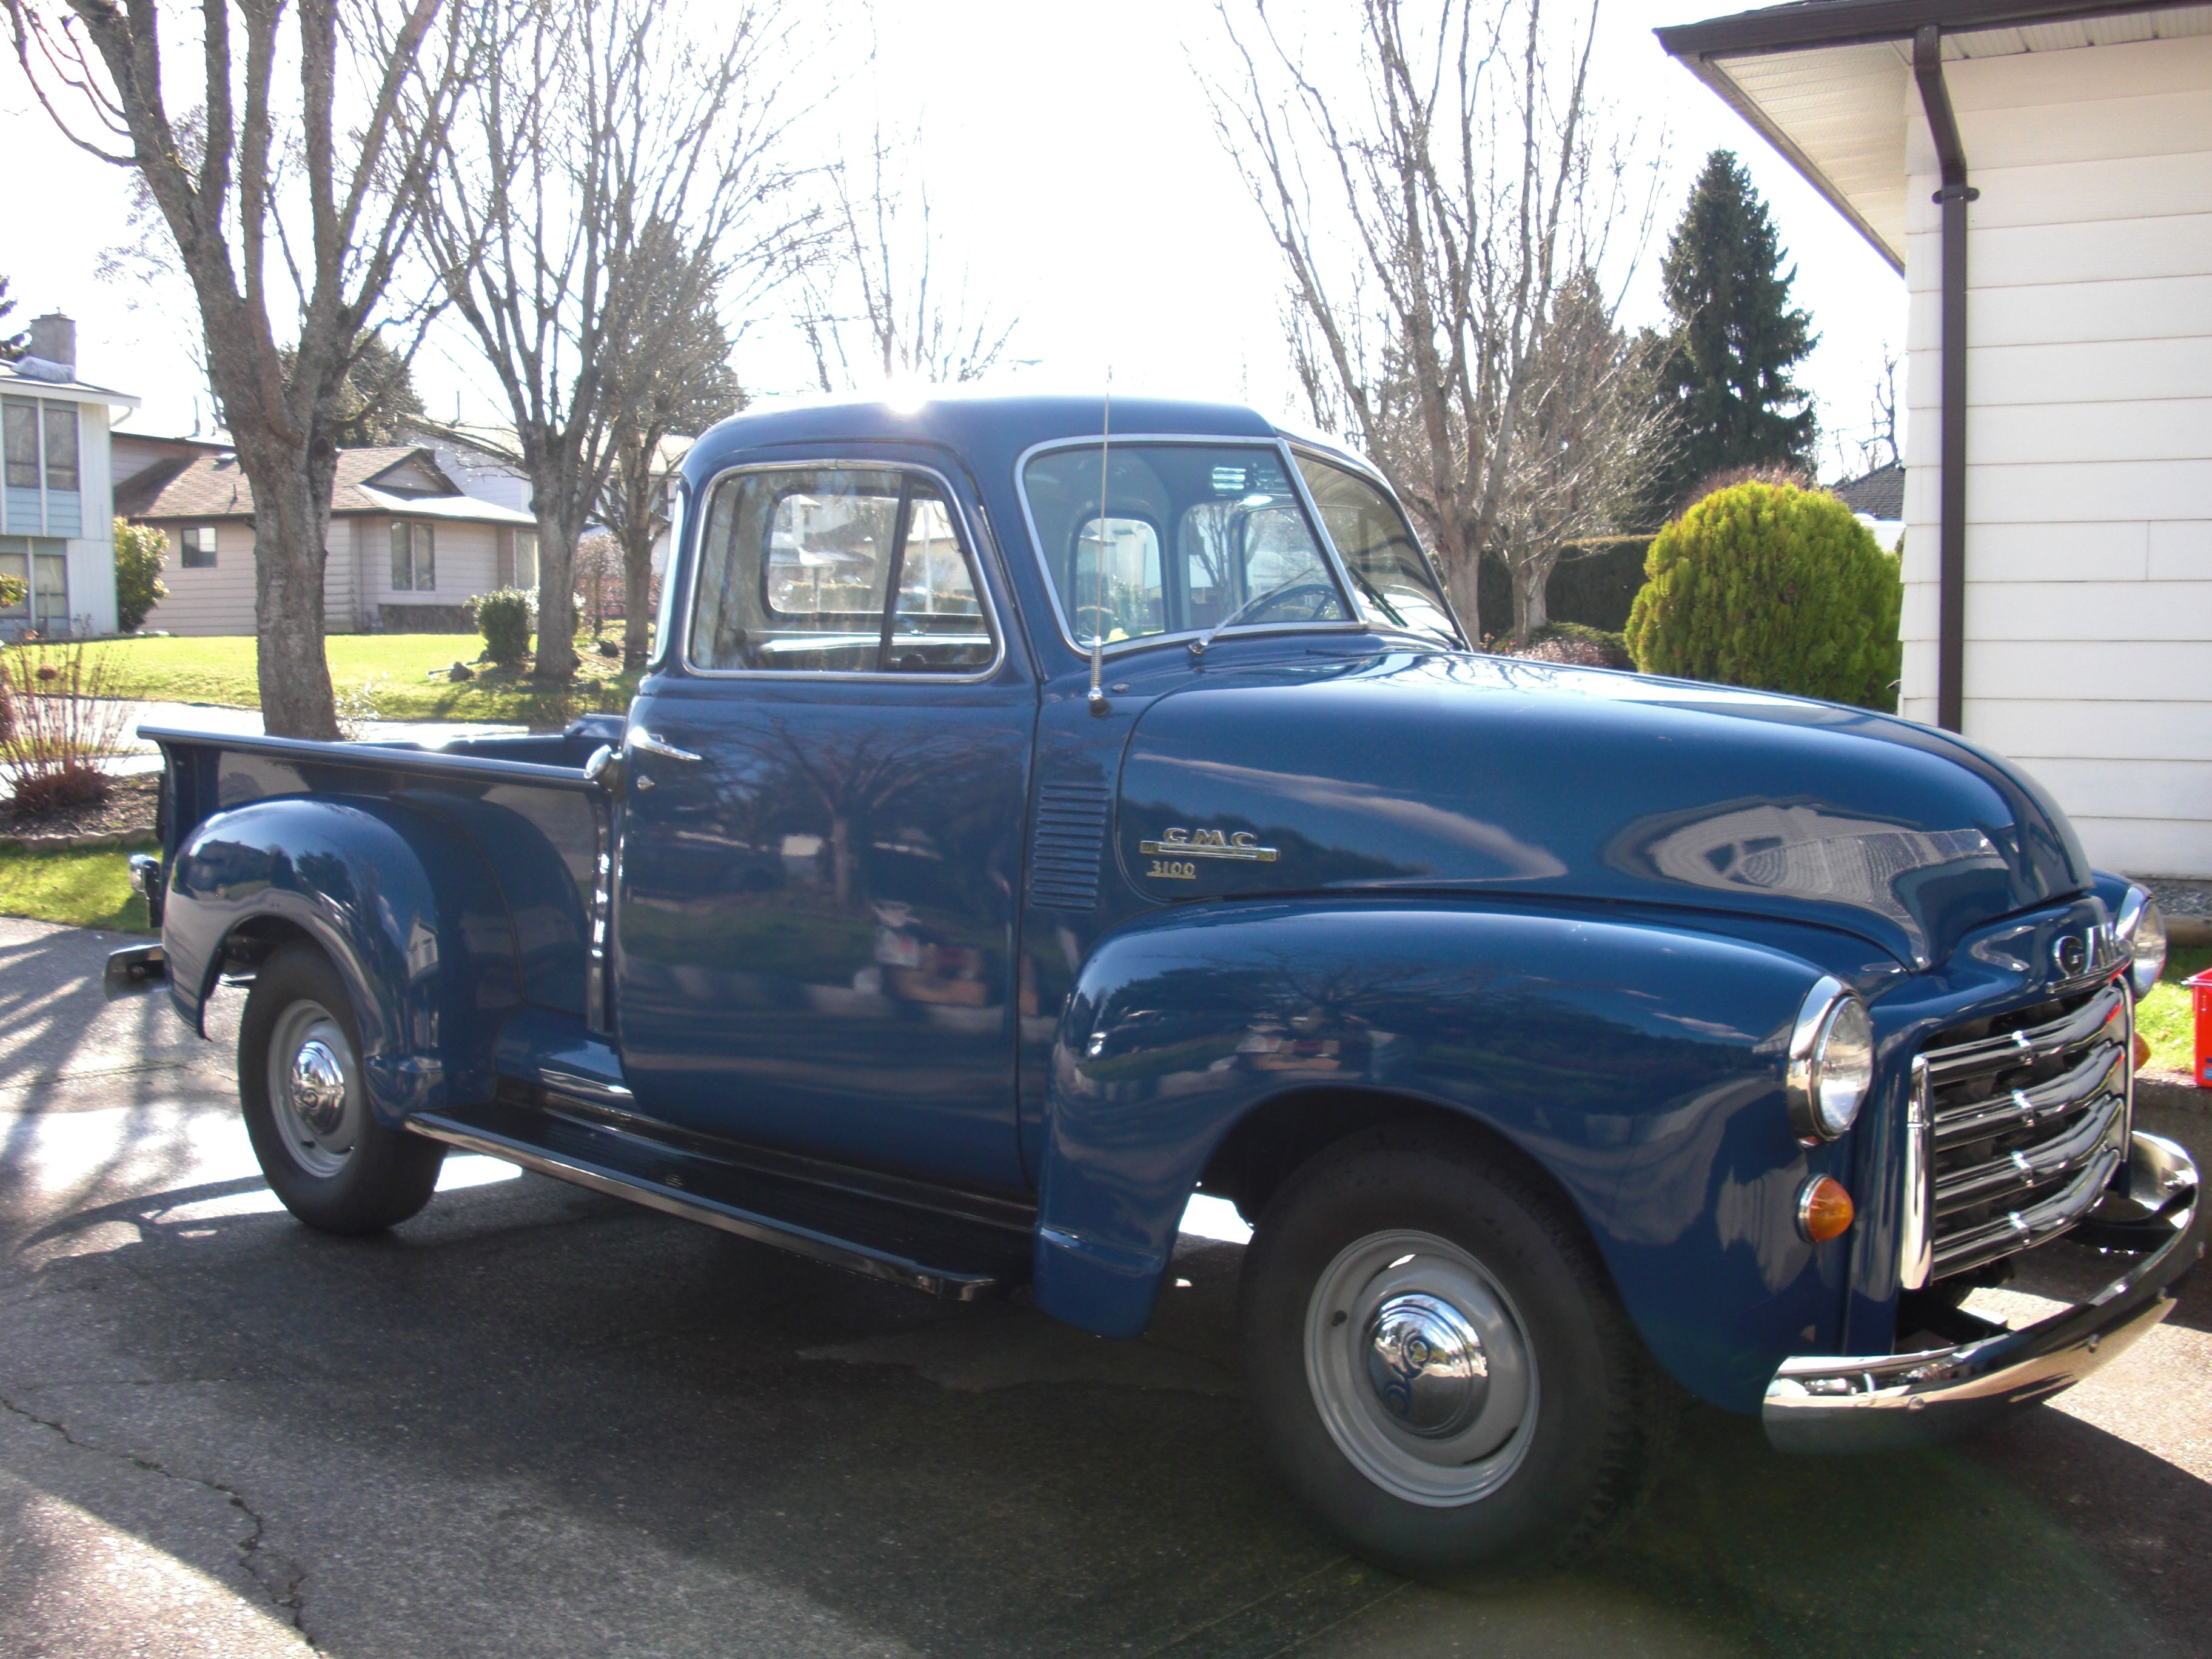 John's 1951 GMC Made in CANADA!! The USA models are